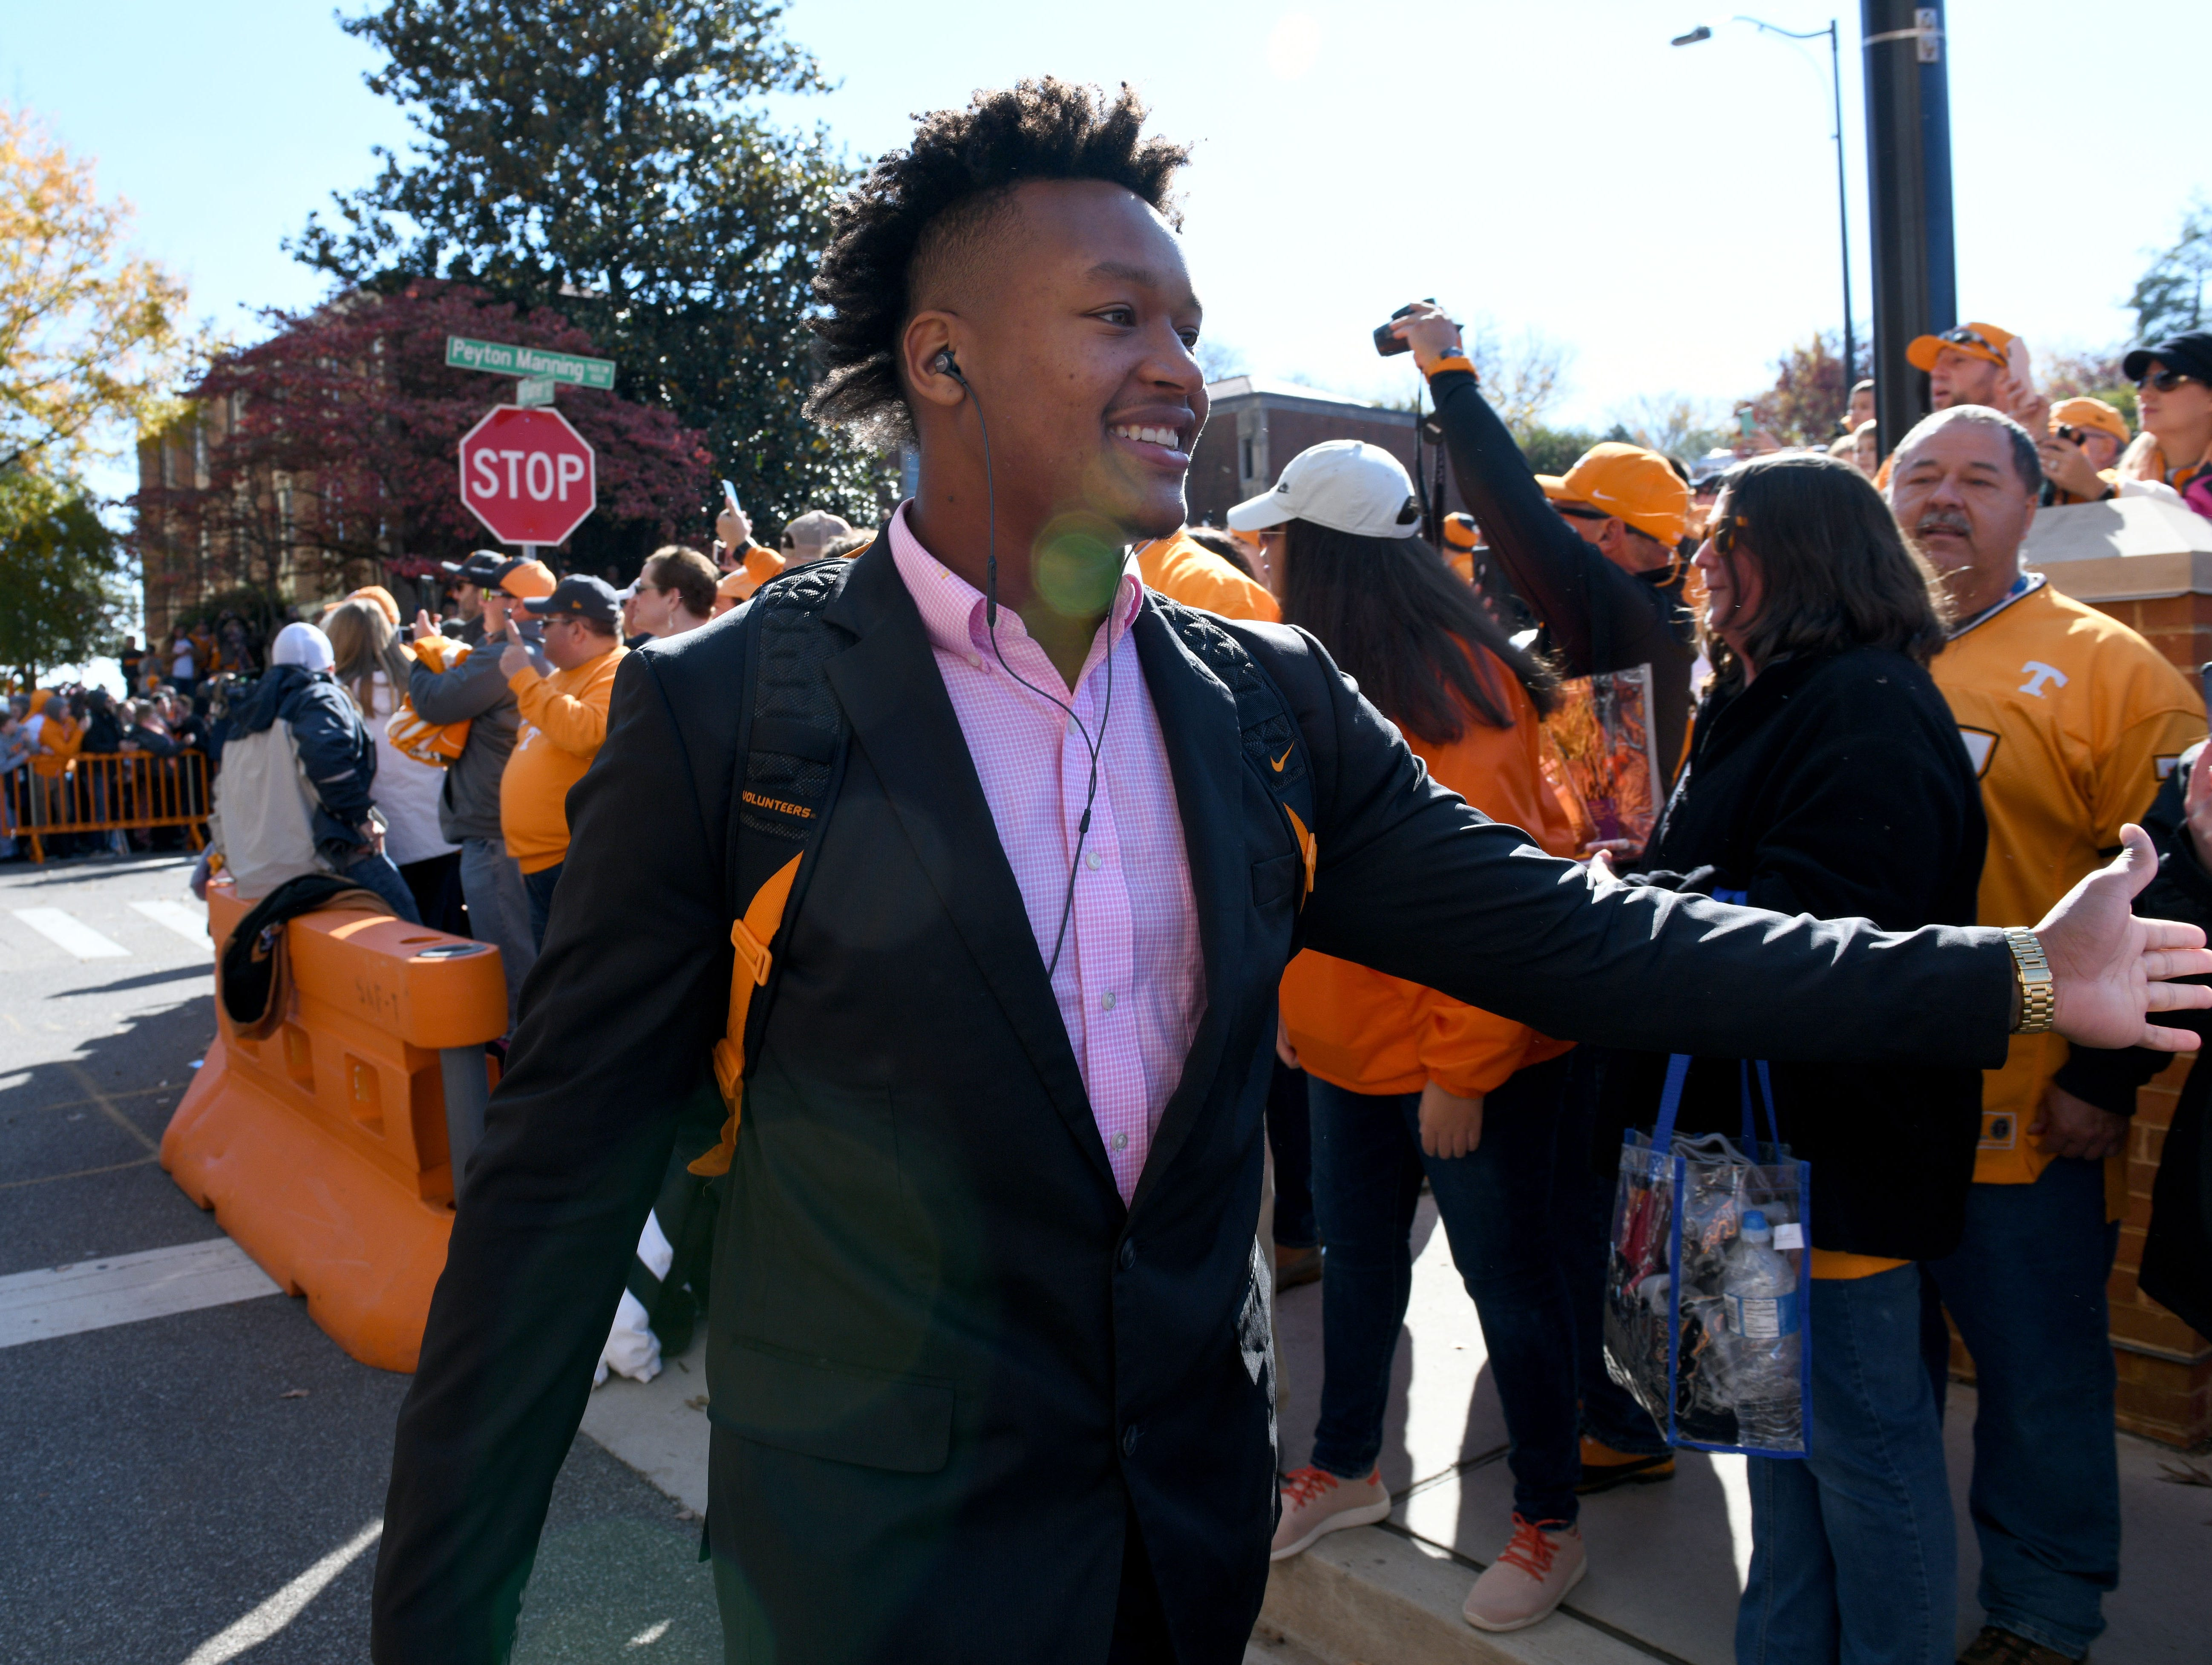 Tennessee players during the Vol Walk before the Kentucky game Saturday, November 10, 2018 at Neyland Stadium in Knoxville, Tenn.